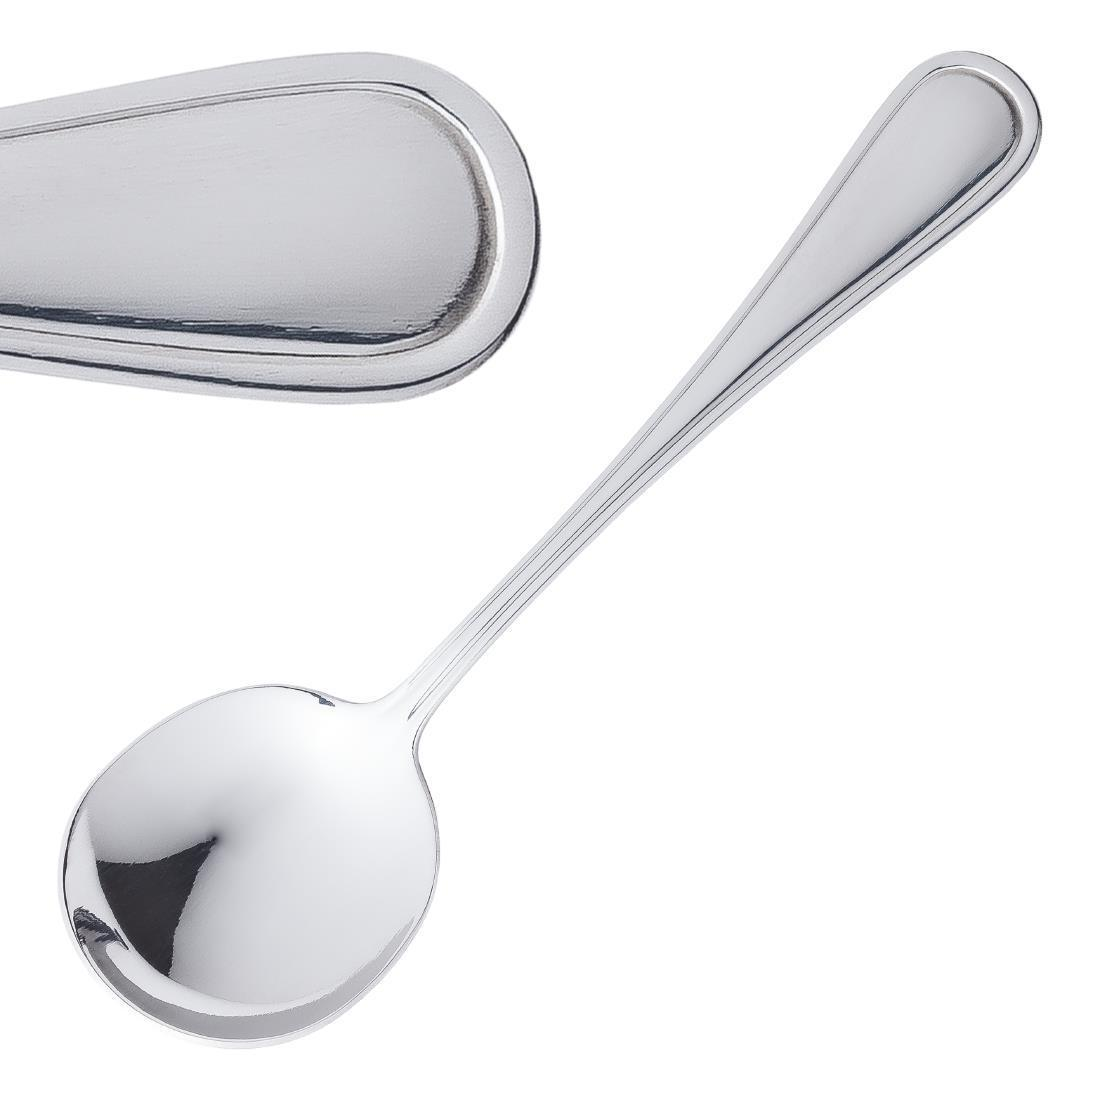 Olympia Mayfair Soup Spoon